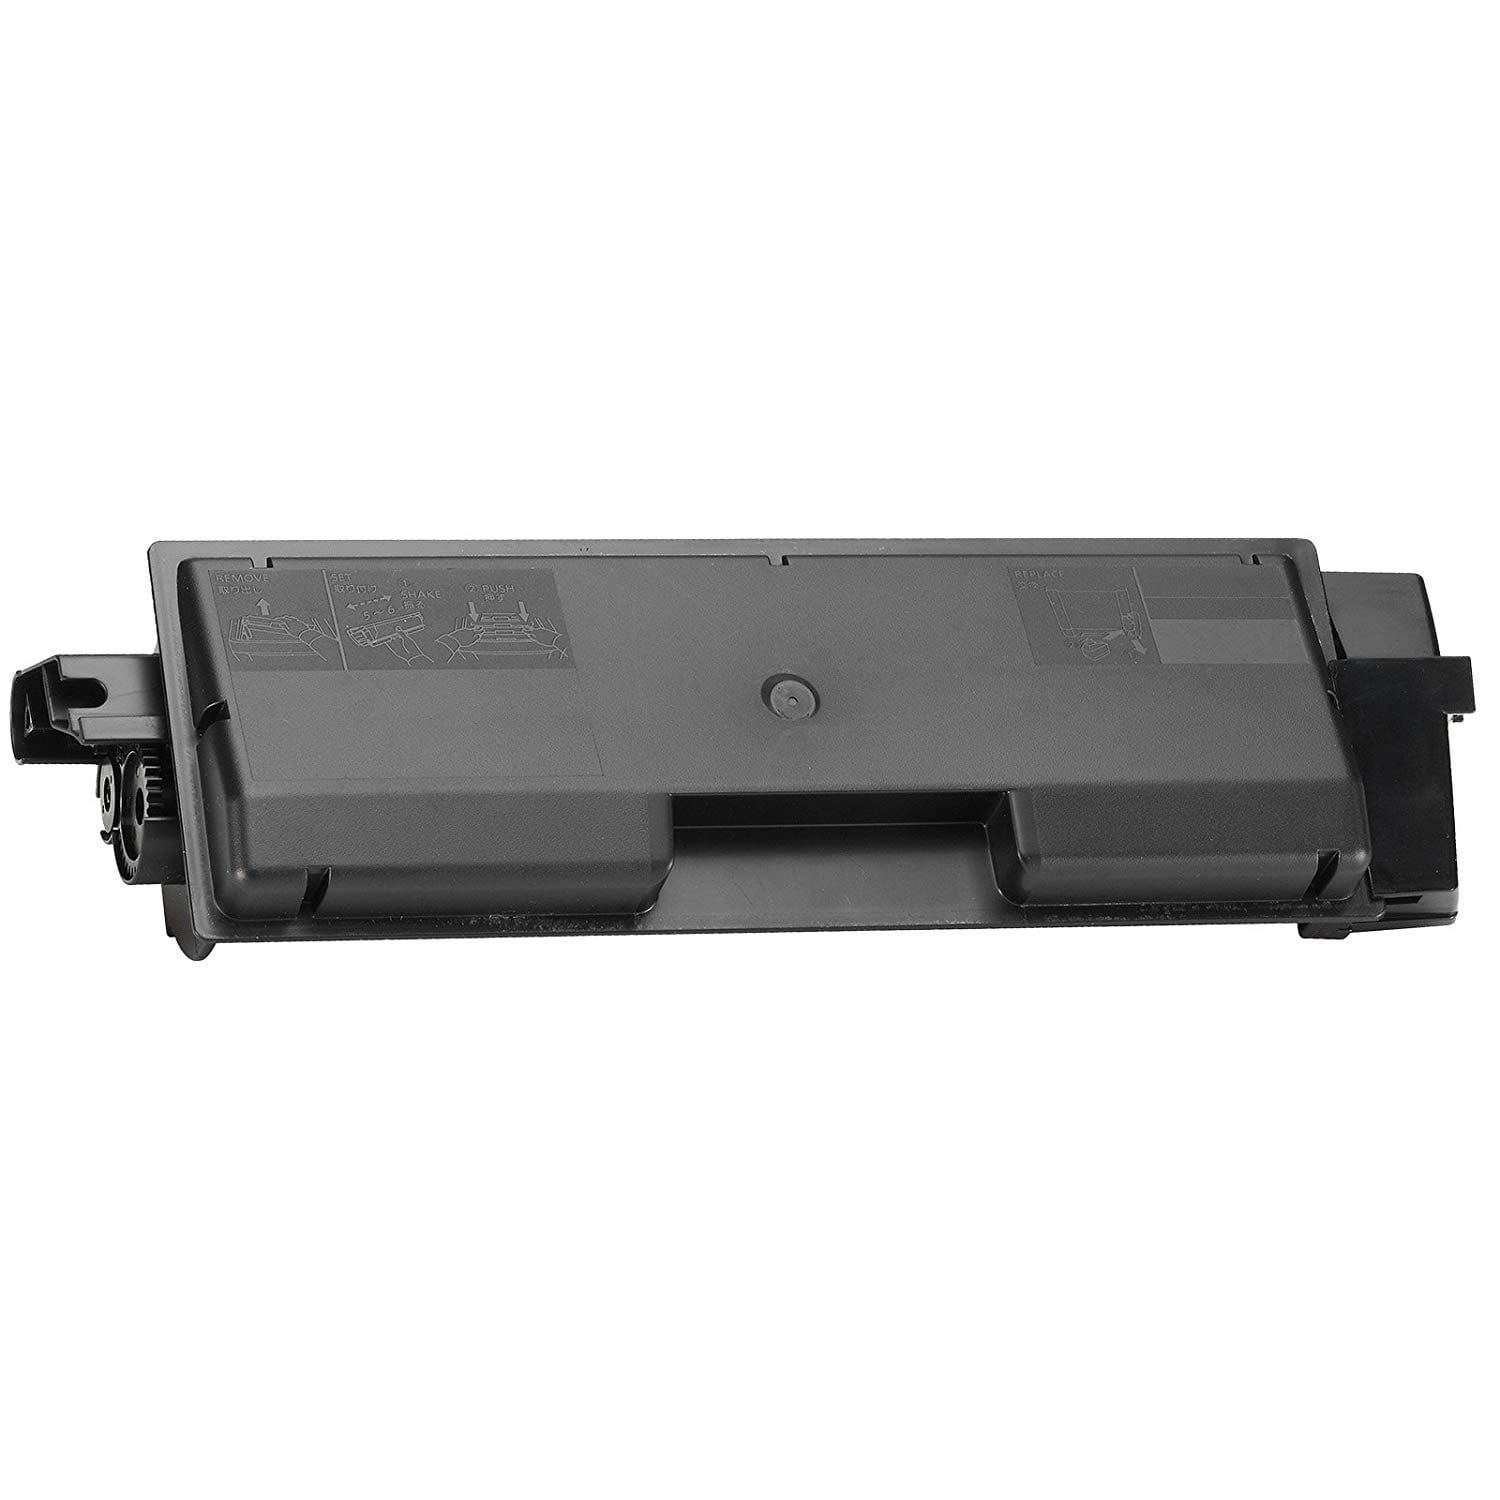 TK-582K Toner Cartridge - Kyocera Mita Compatible (Black)